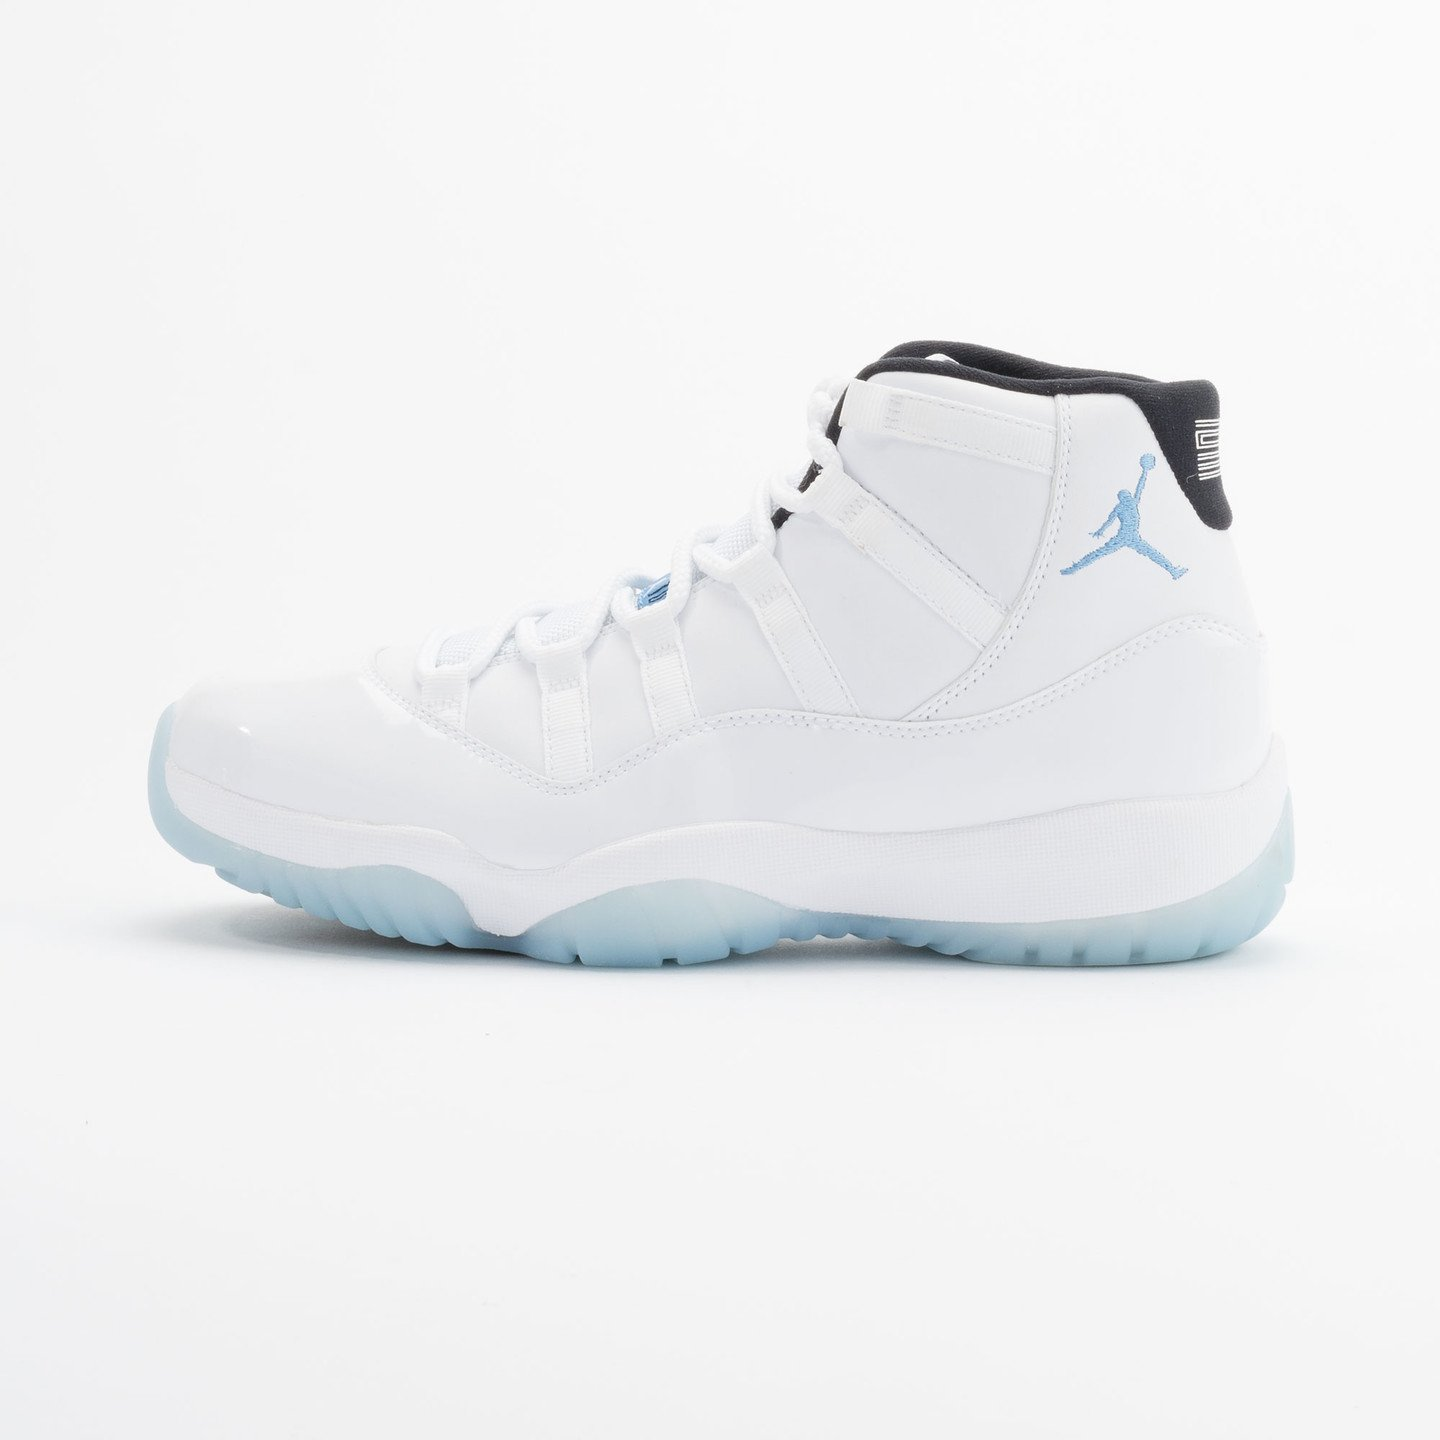 Jordan Air Jordan 11 Retro White/Legend Blue-Black 378037-117-43